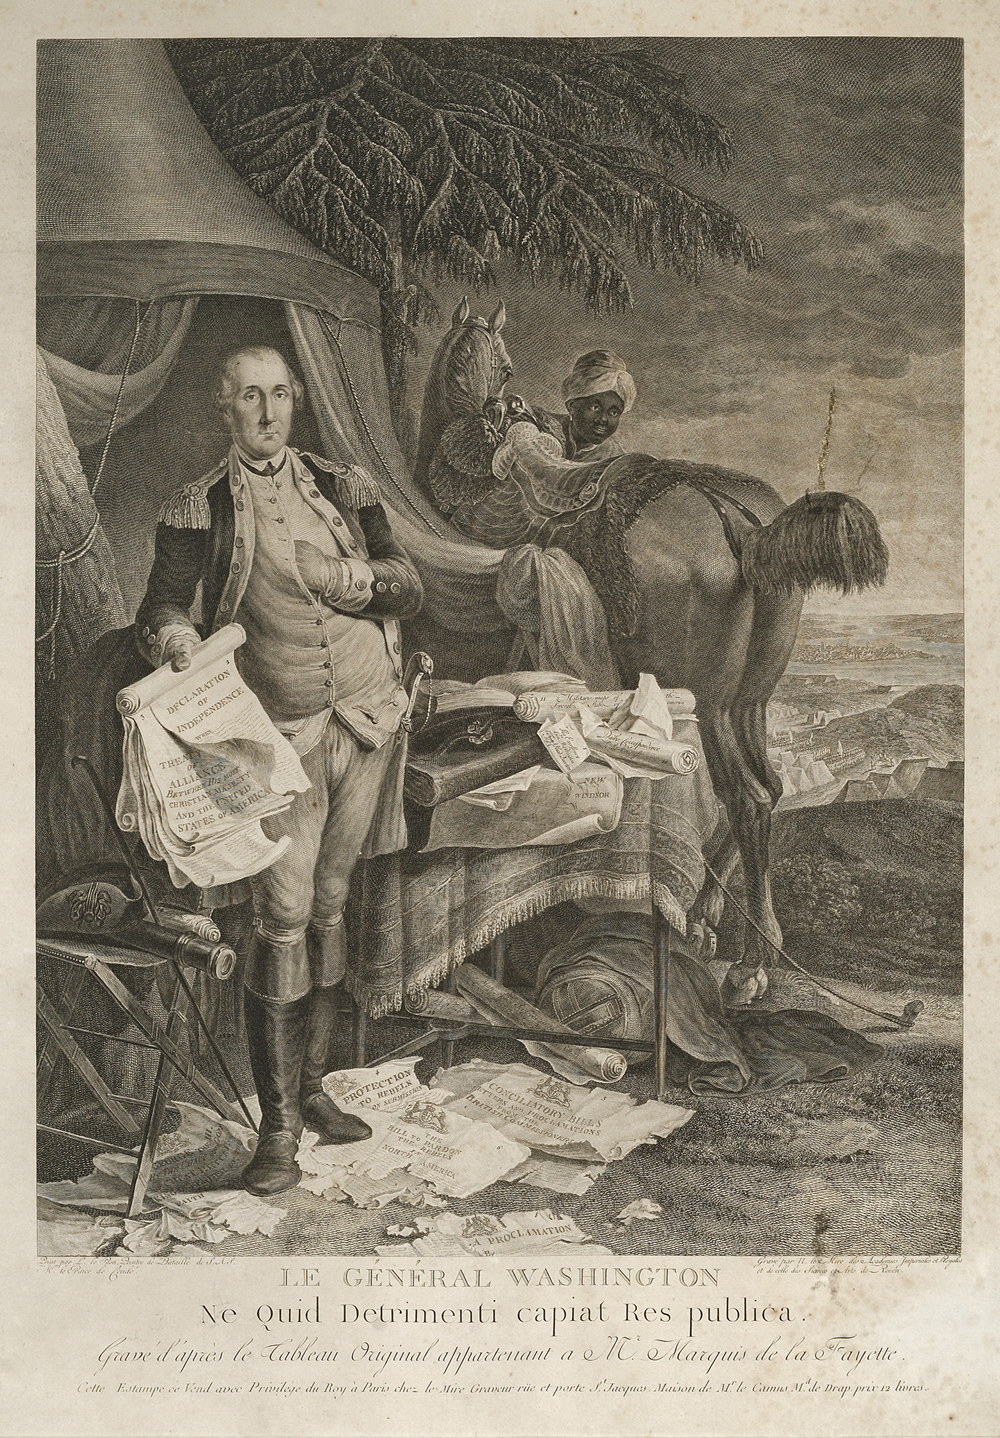 <em>Le General Washington</em> by Noël Le Mire, 1780